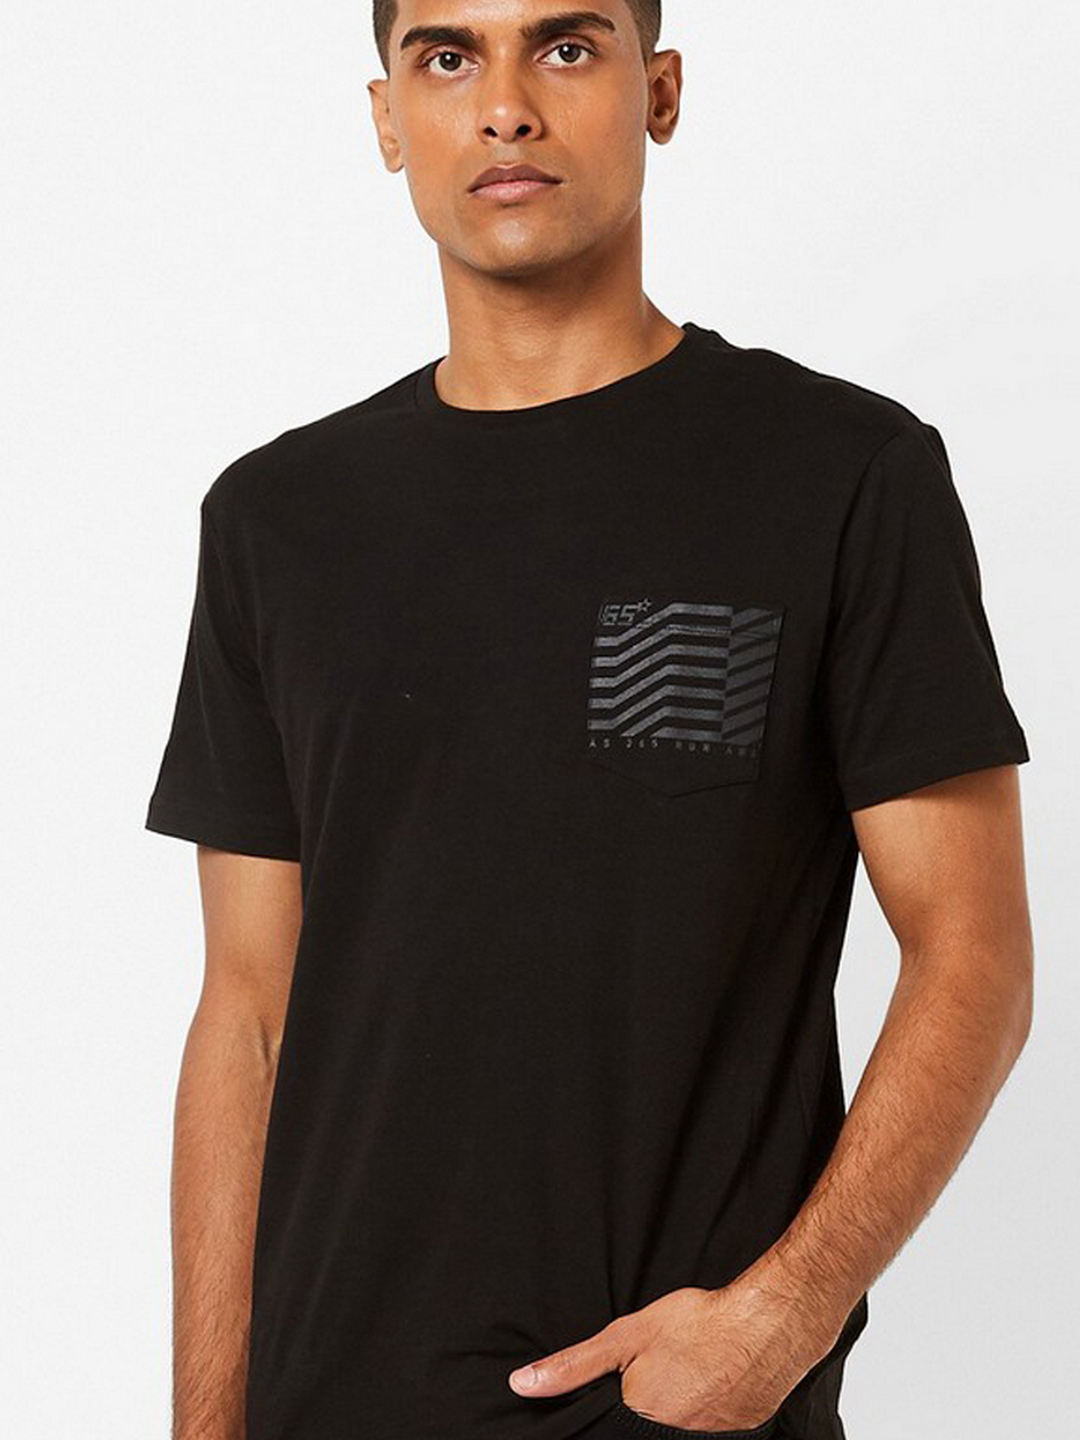 Men's Geryg/s patch pocket crew neck black t-shirt